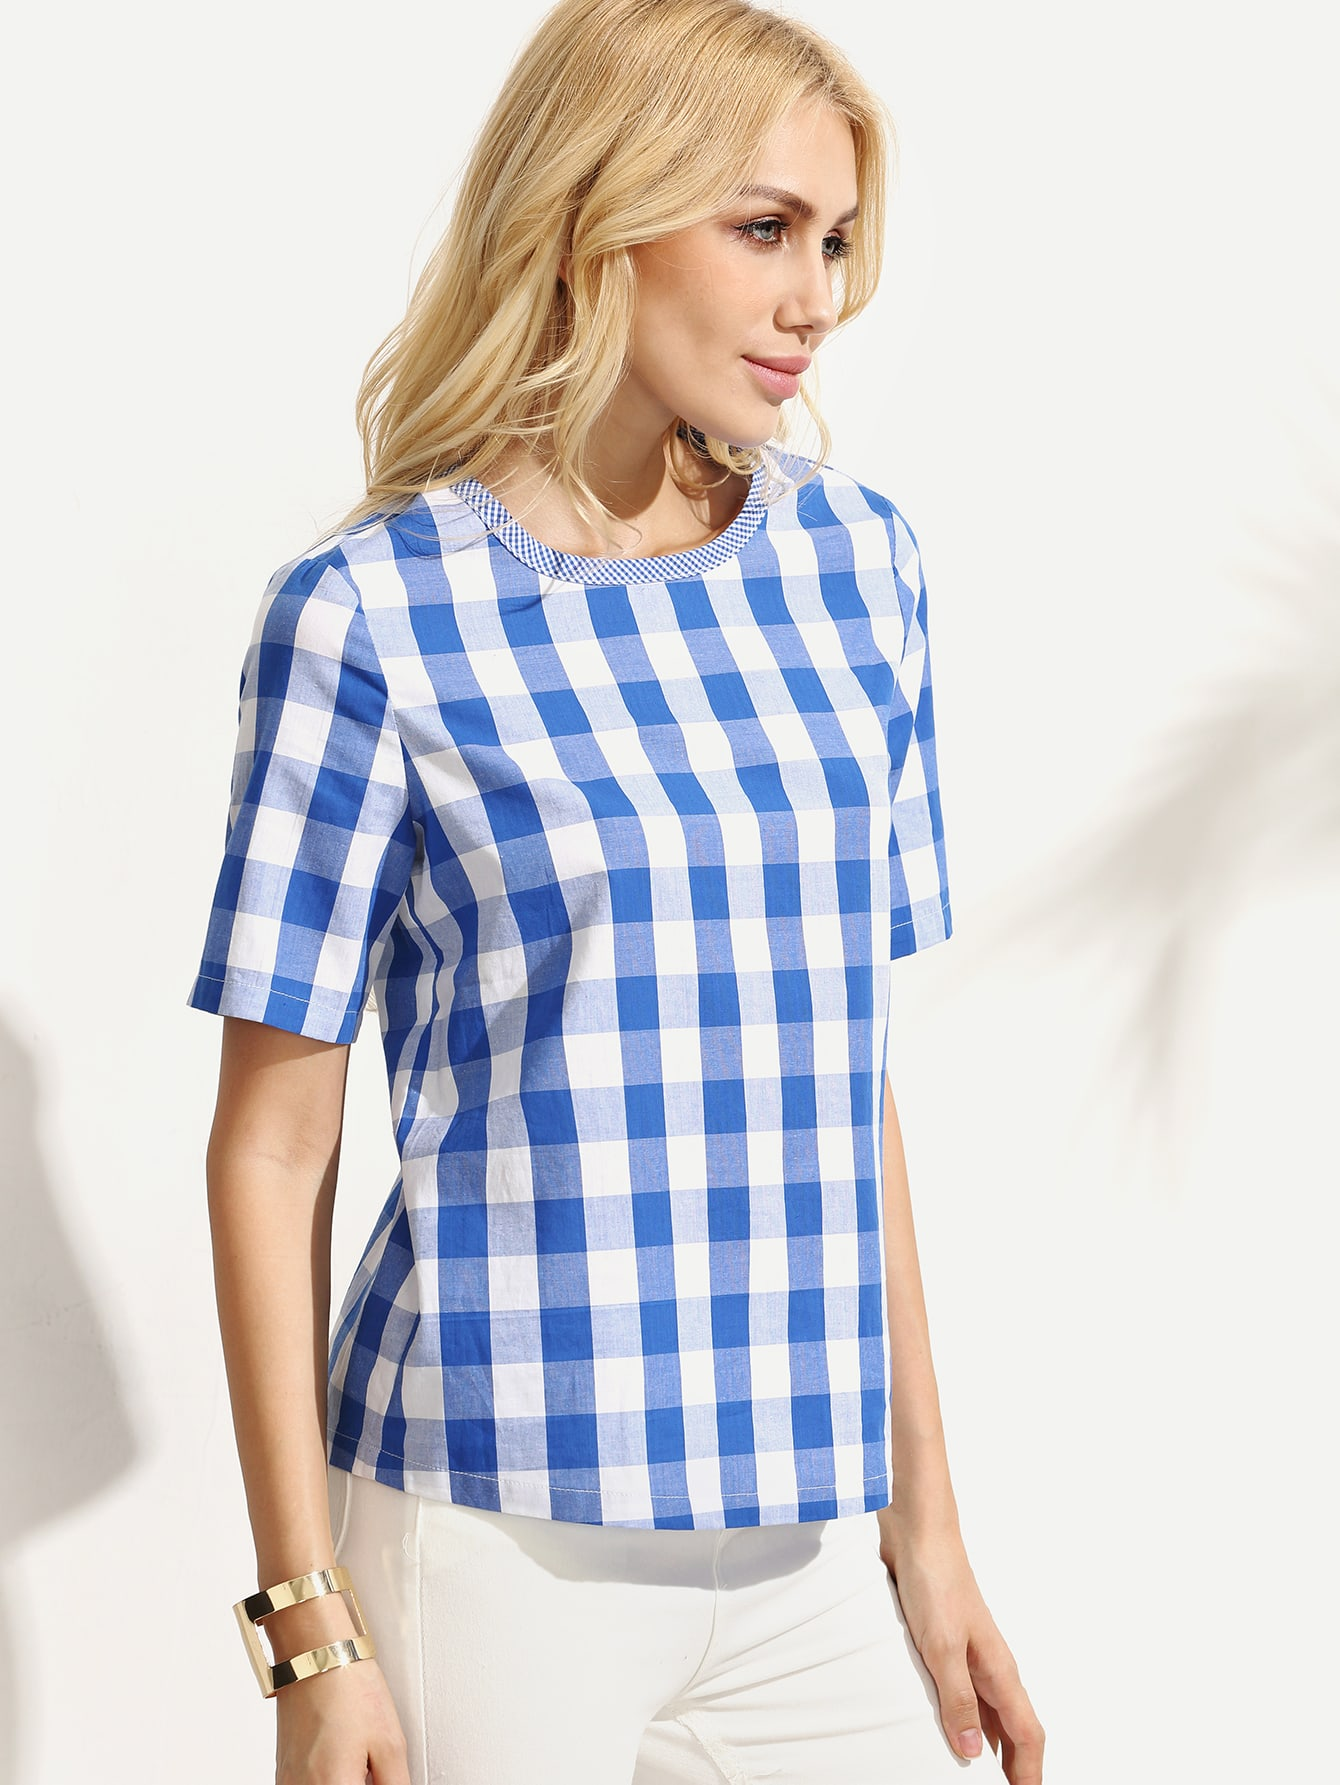 Our blue gingham lace dress is one of the cutest dresses we have seen and is super trendy! Pair with a long sleeve shirt, or cardigan, and leggings for fall to wear year-round!